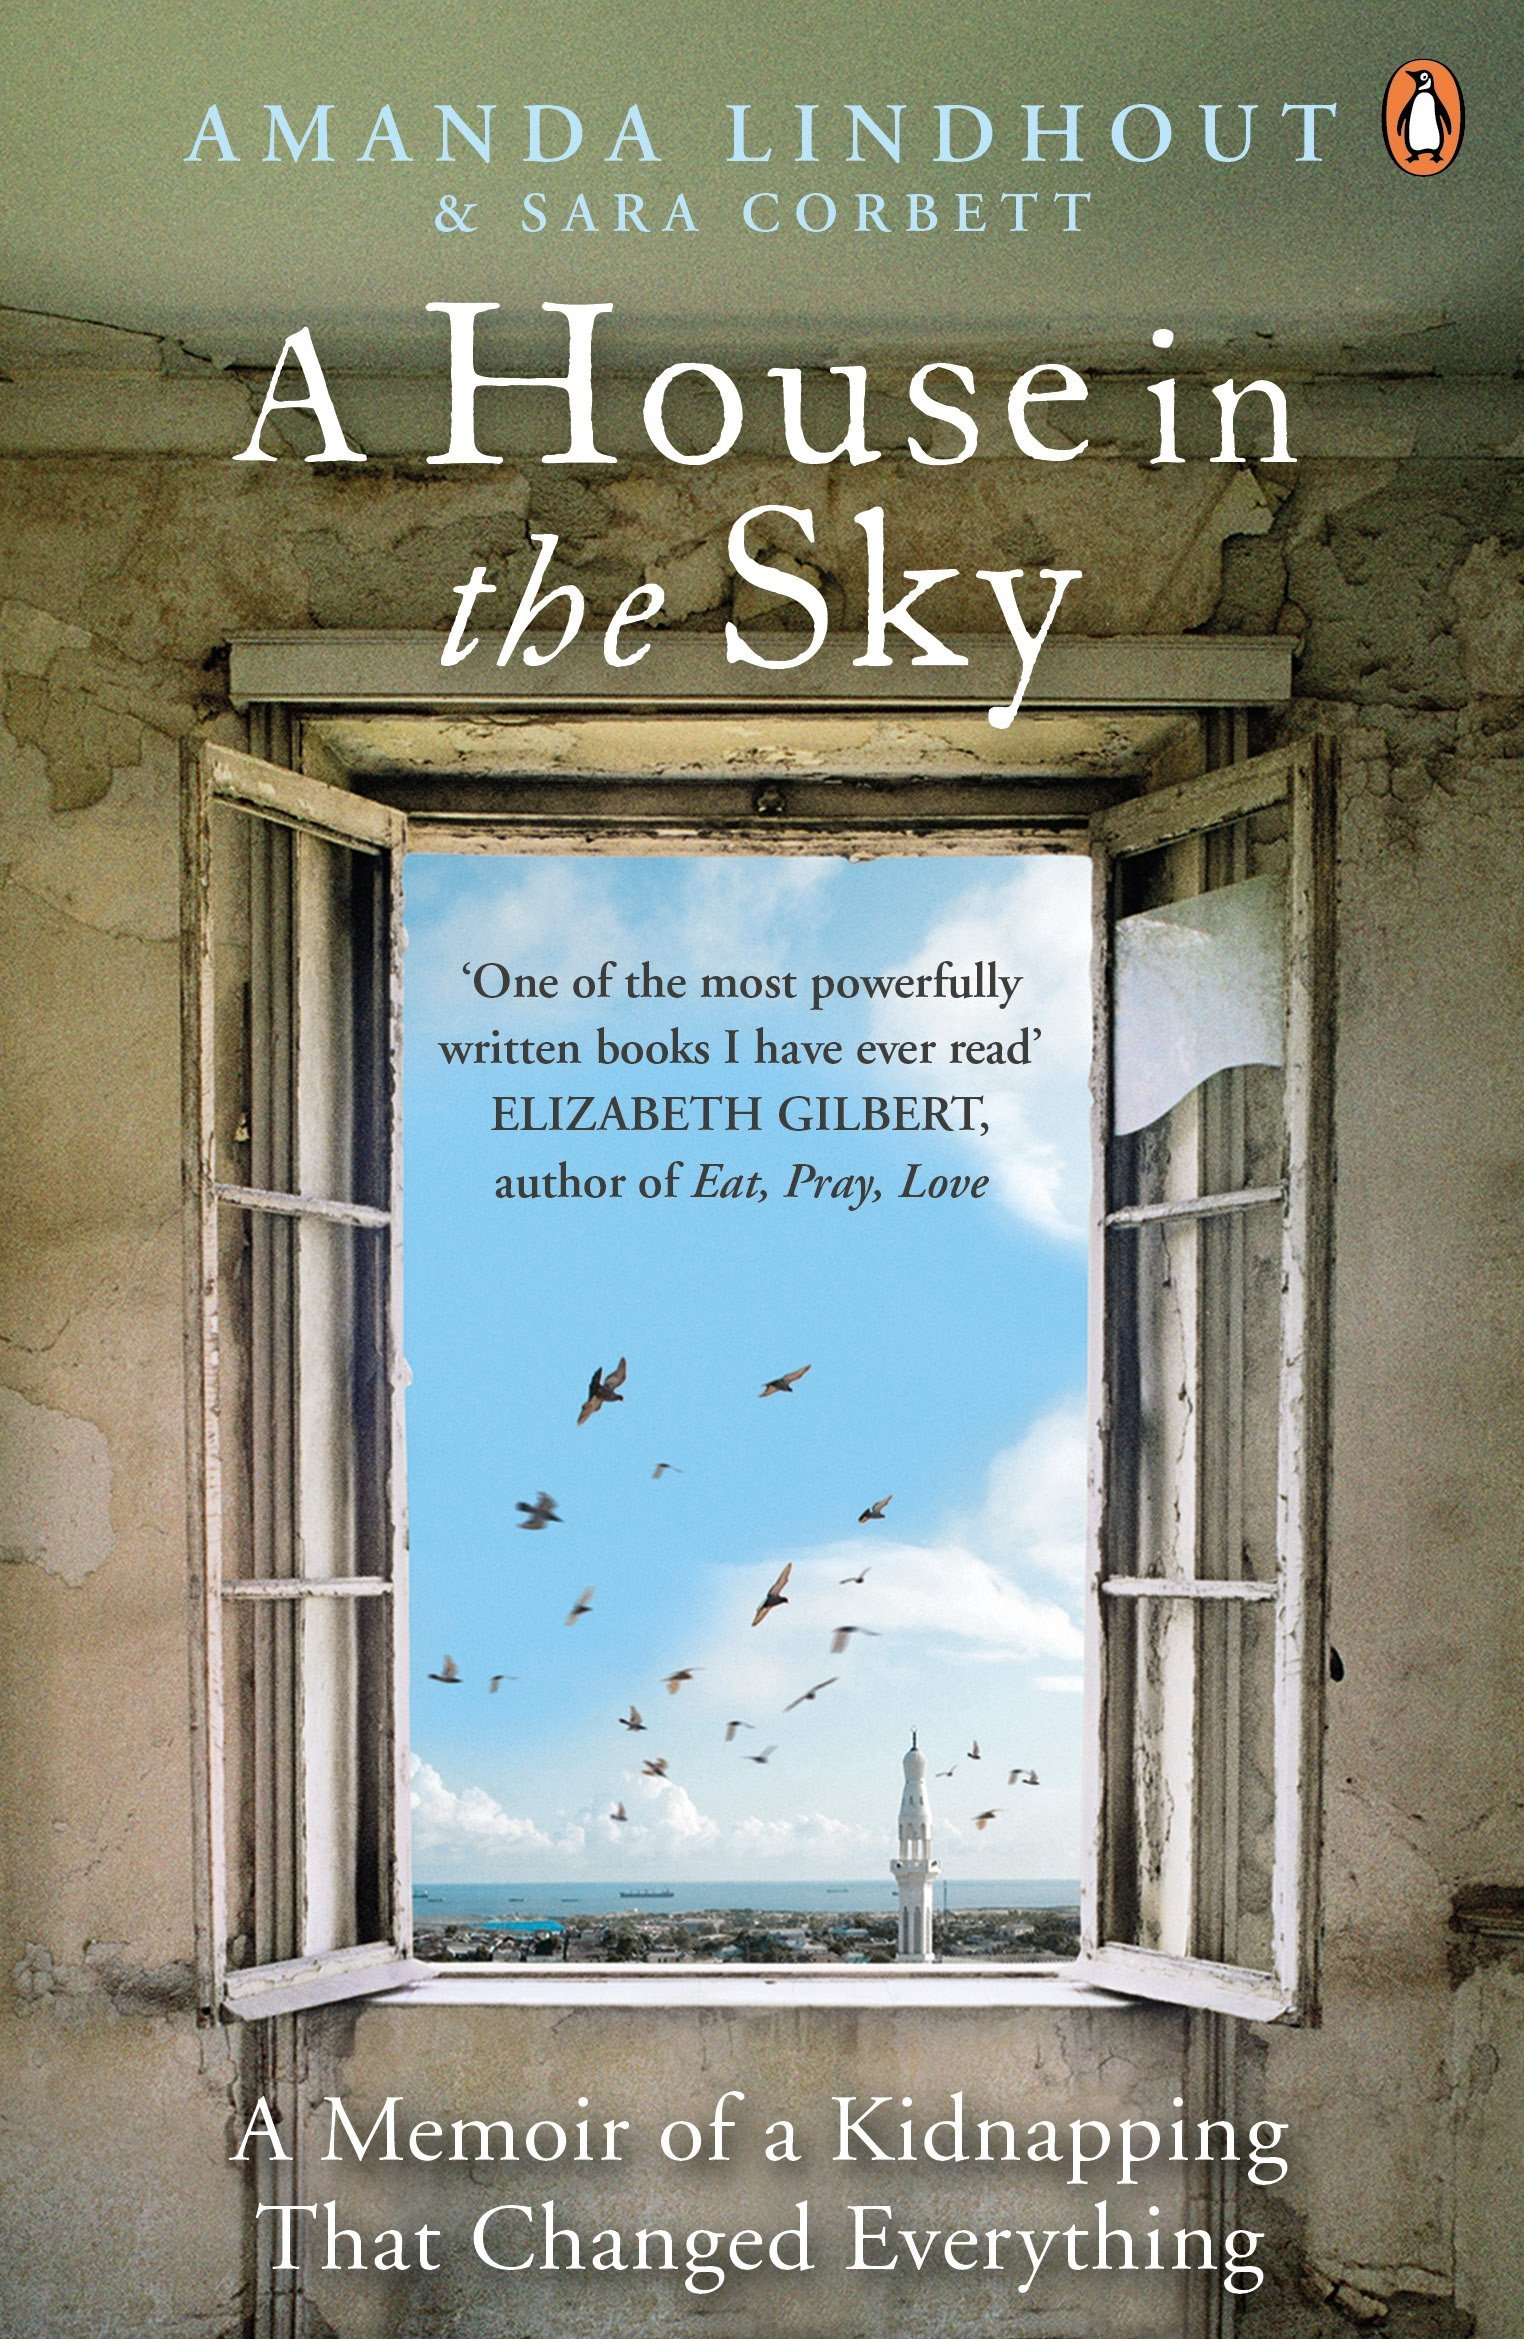 A House In The Sky: A Memoir Of A Kidnapping That Changed Everything:  Amazon: Amanda Lindhout, Sara Corbett: 9780670920860: Books